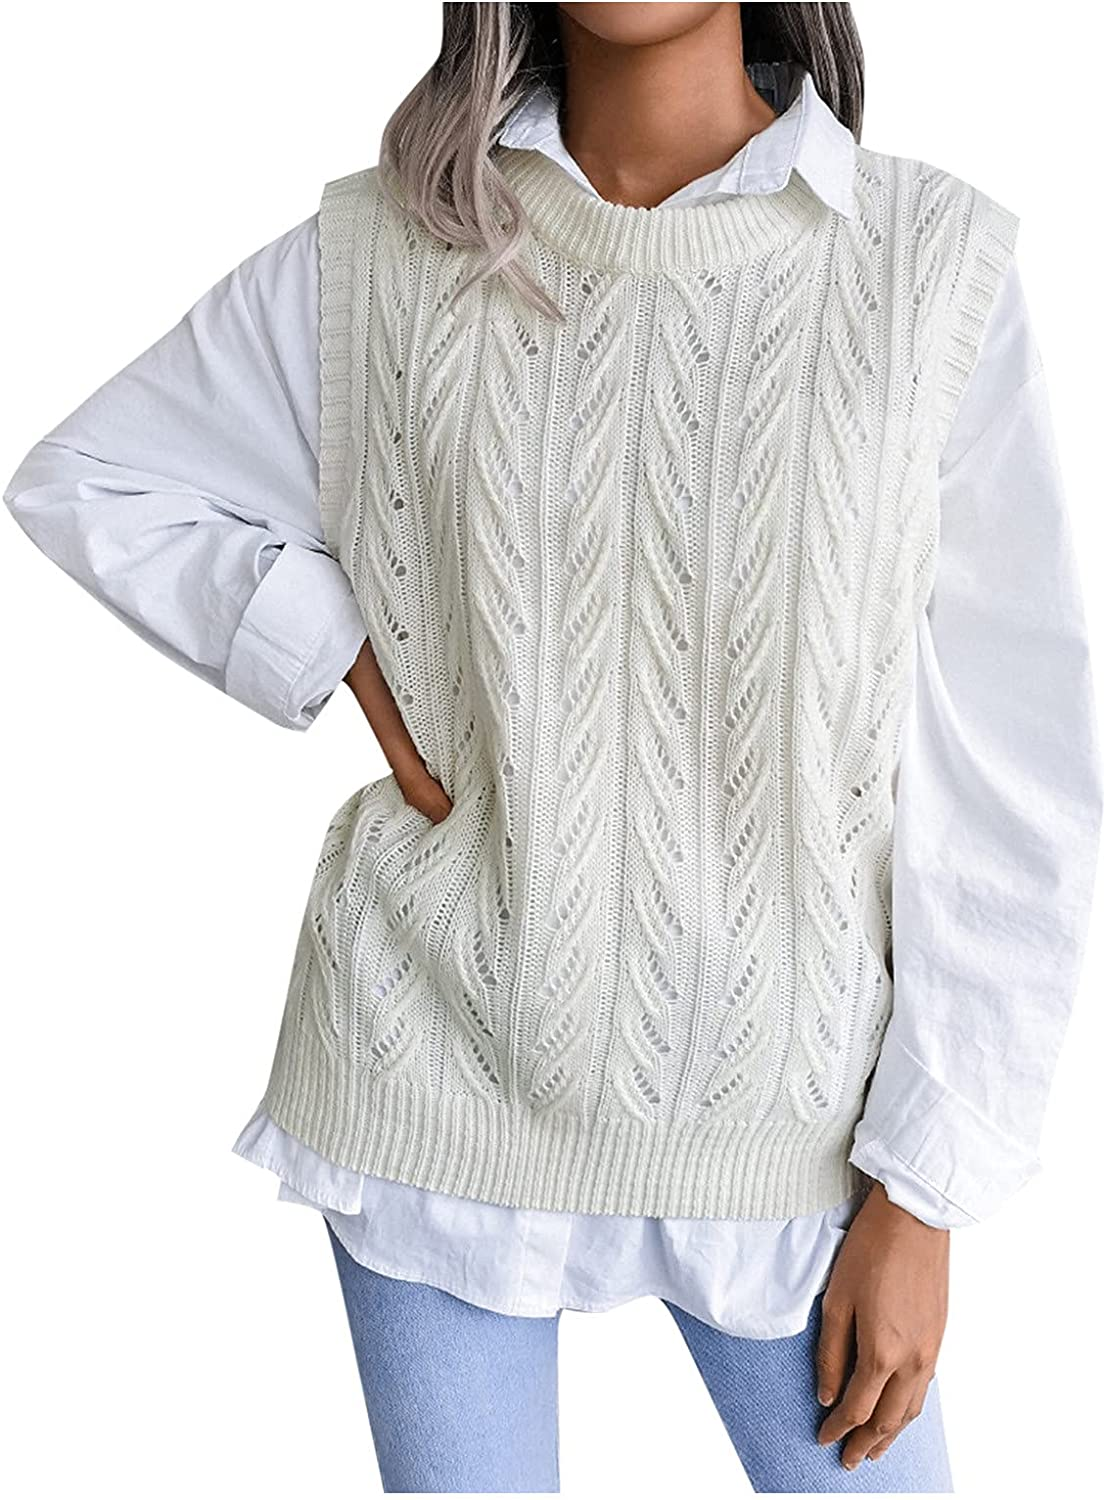 Sweater Vest Women Oversized Crewneck Sleeveless Sweaters Womens Cable Knit Tops